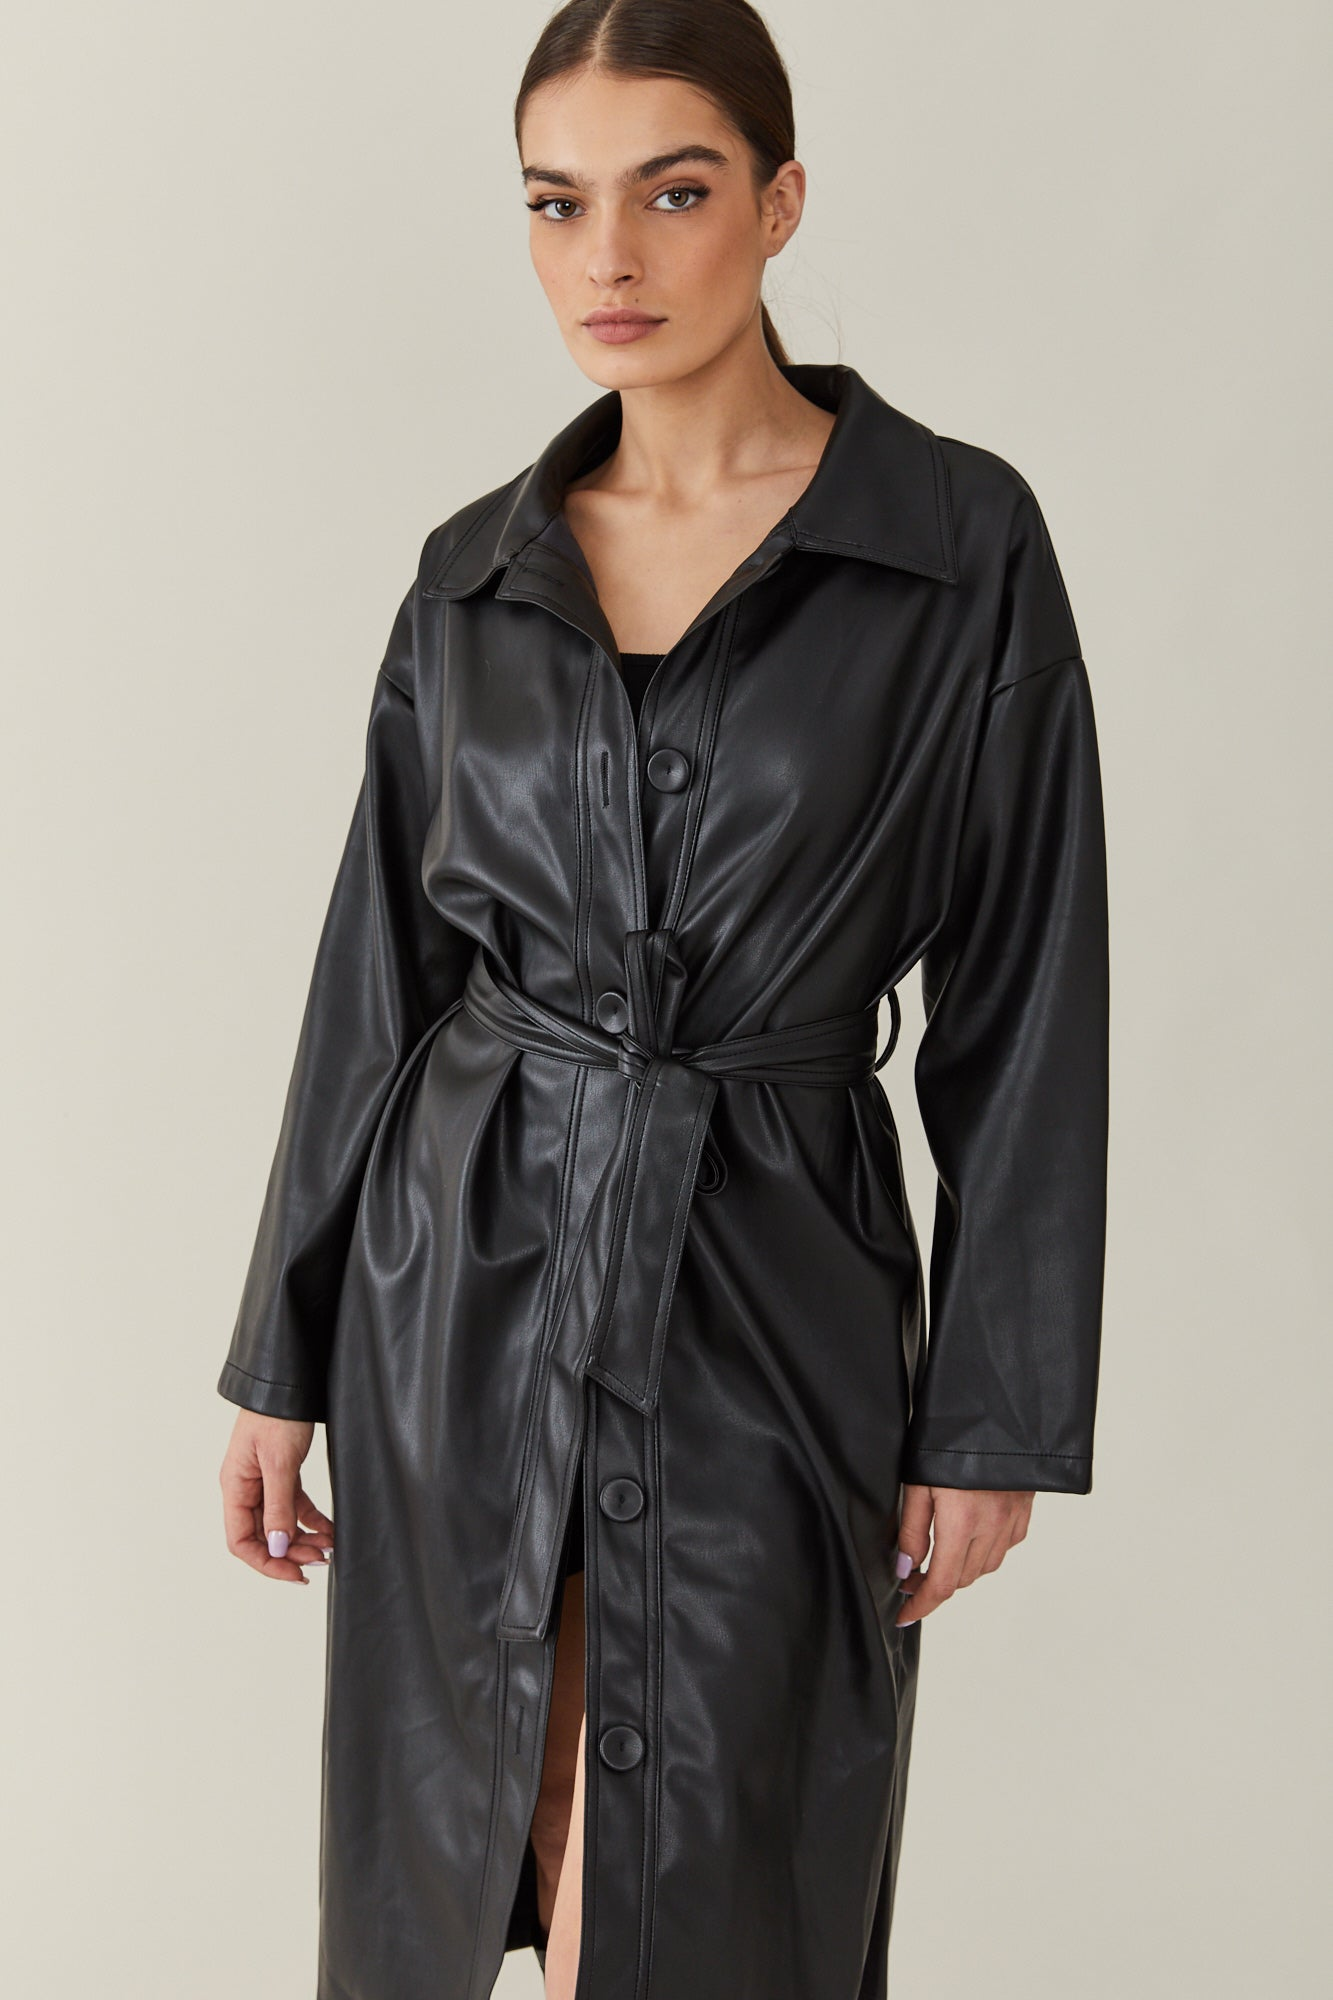 Bar Leather Trench Coat